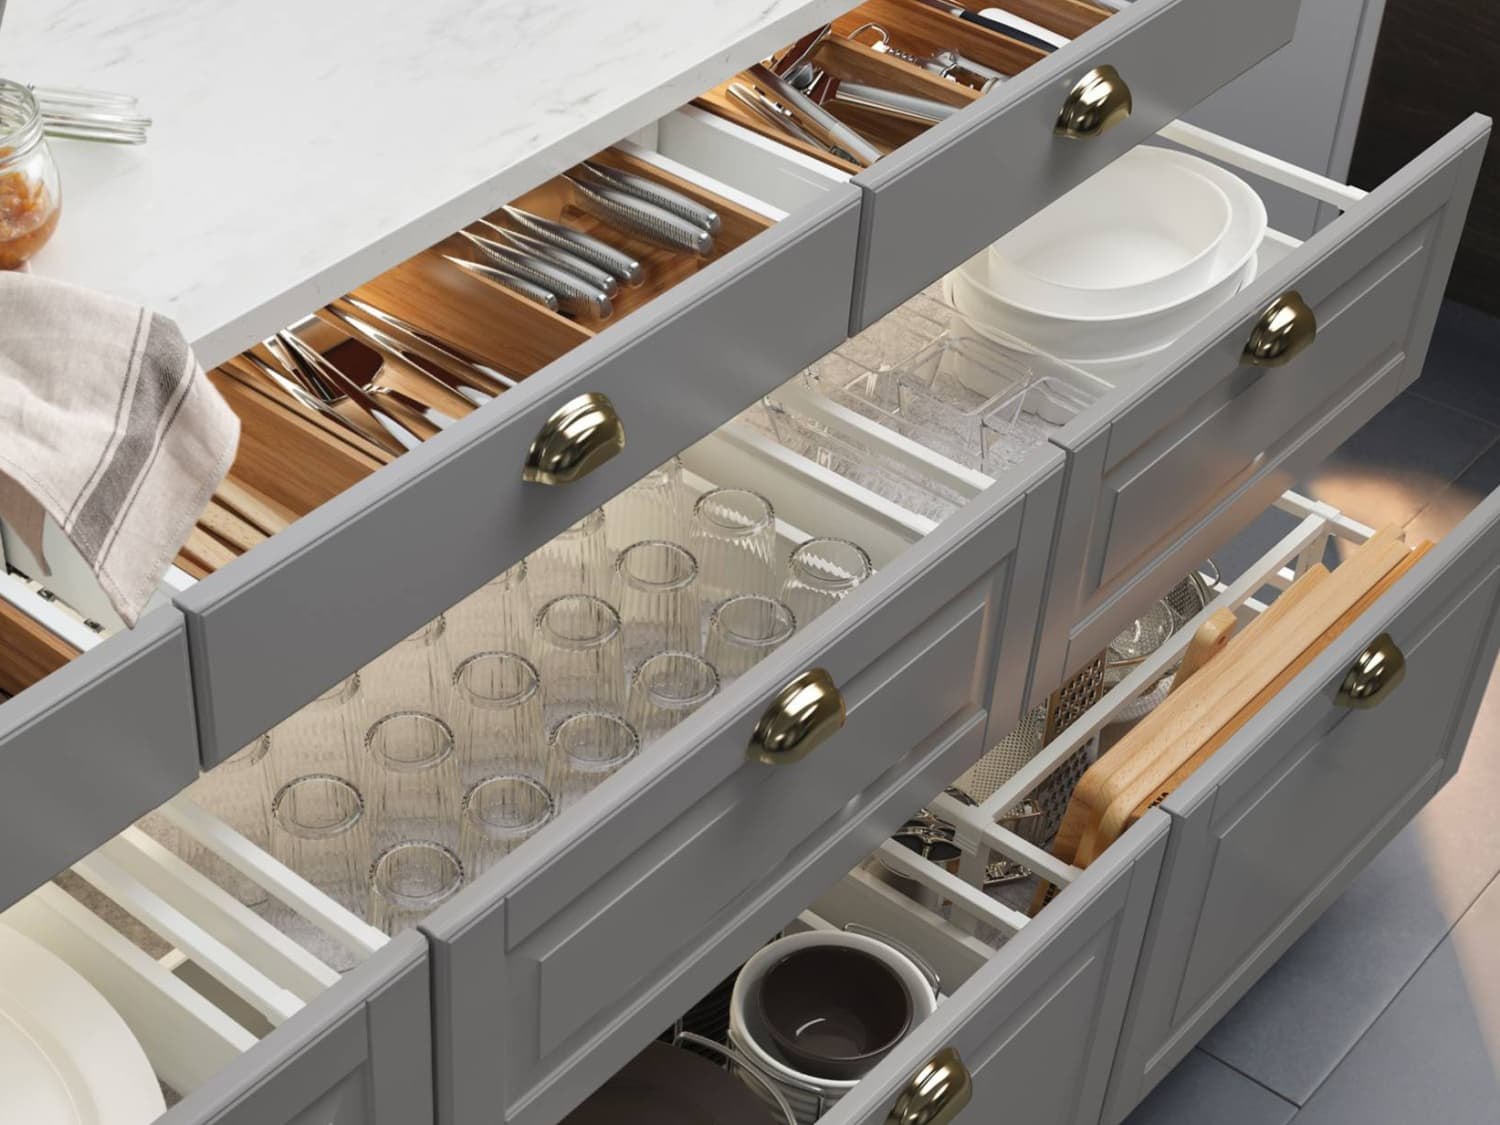 deep kitchen drawers vs cabinets Kitchen Cabinets Versus Drawers - Pros, Cons  Apartment Therapy